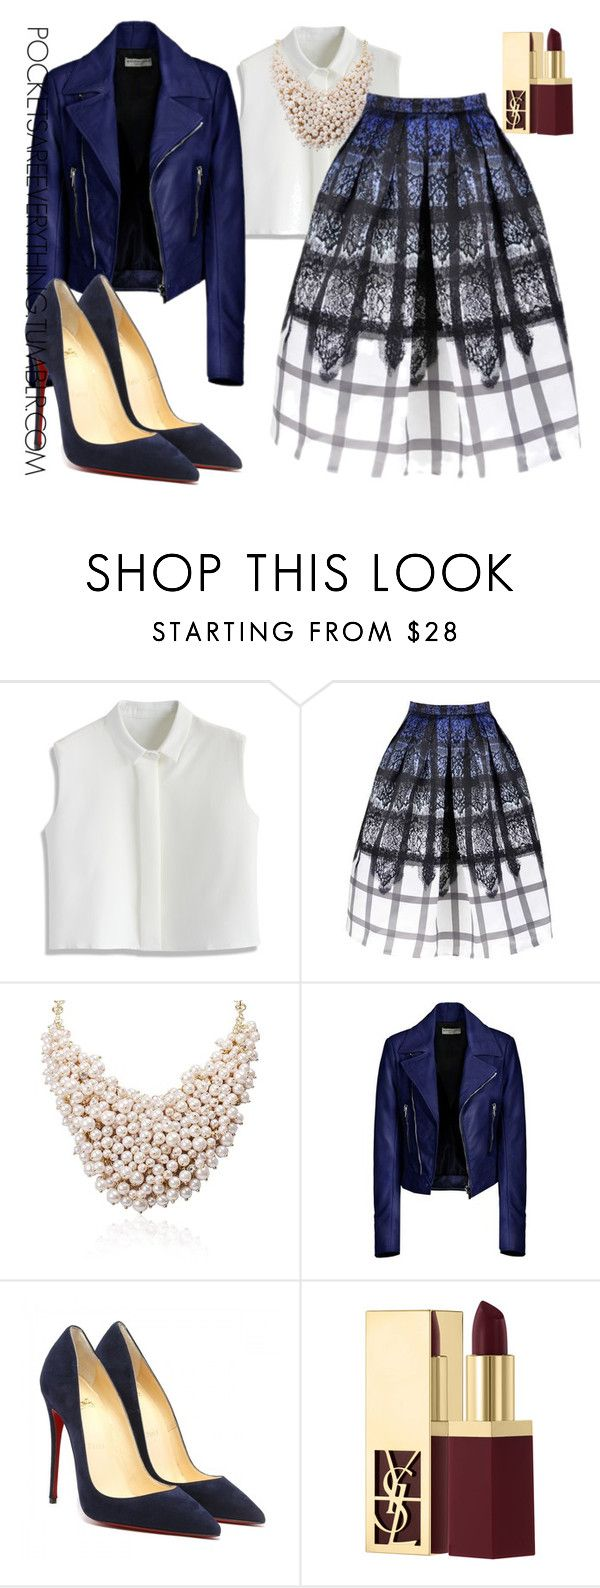 """Holiday Chic(Part 3)"" by adoremycurves ❤ liked on Polyvore featuring Chicwish, Balenciaga and Yves Saint Laurent"